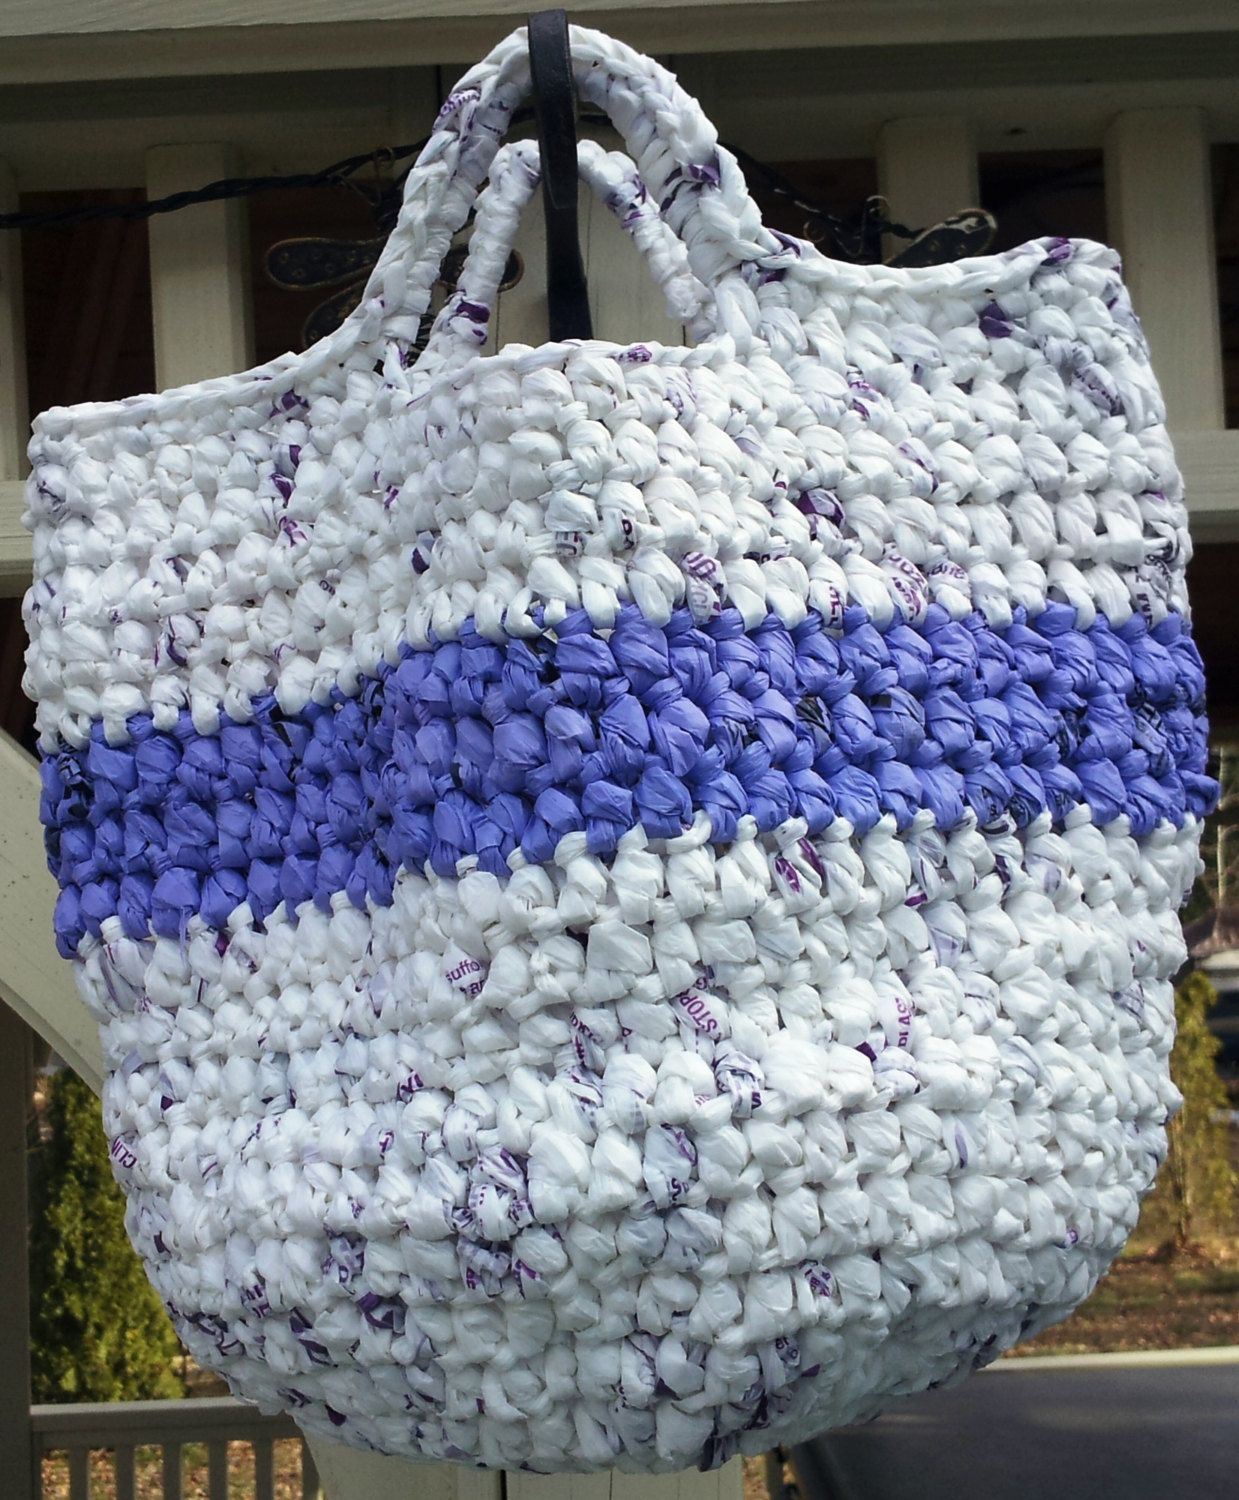 Crochet recycled plastic bags - Recycled Plastic Bag Crochet Tote Bag Market Bag White Purple Eco Friendly Purse Woven Bag